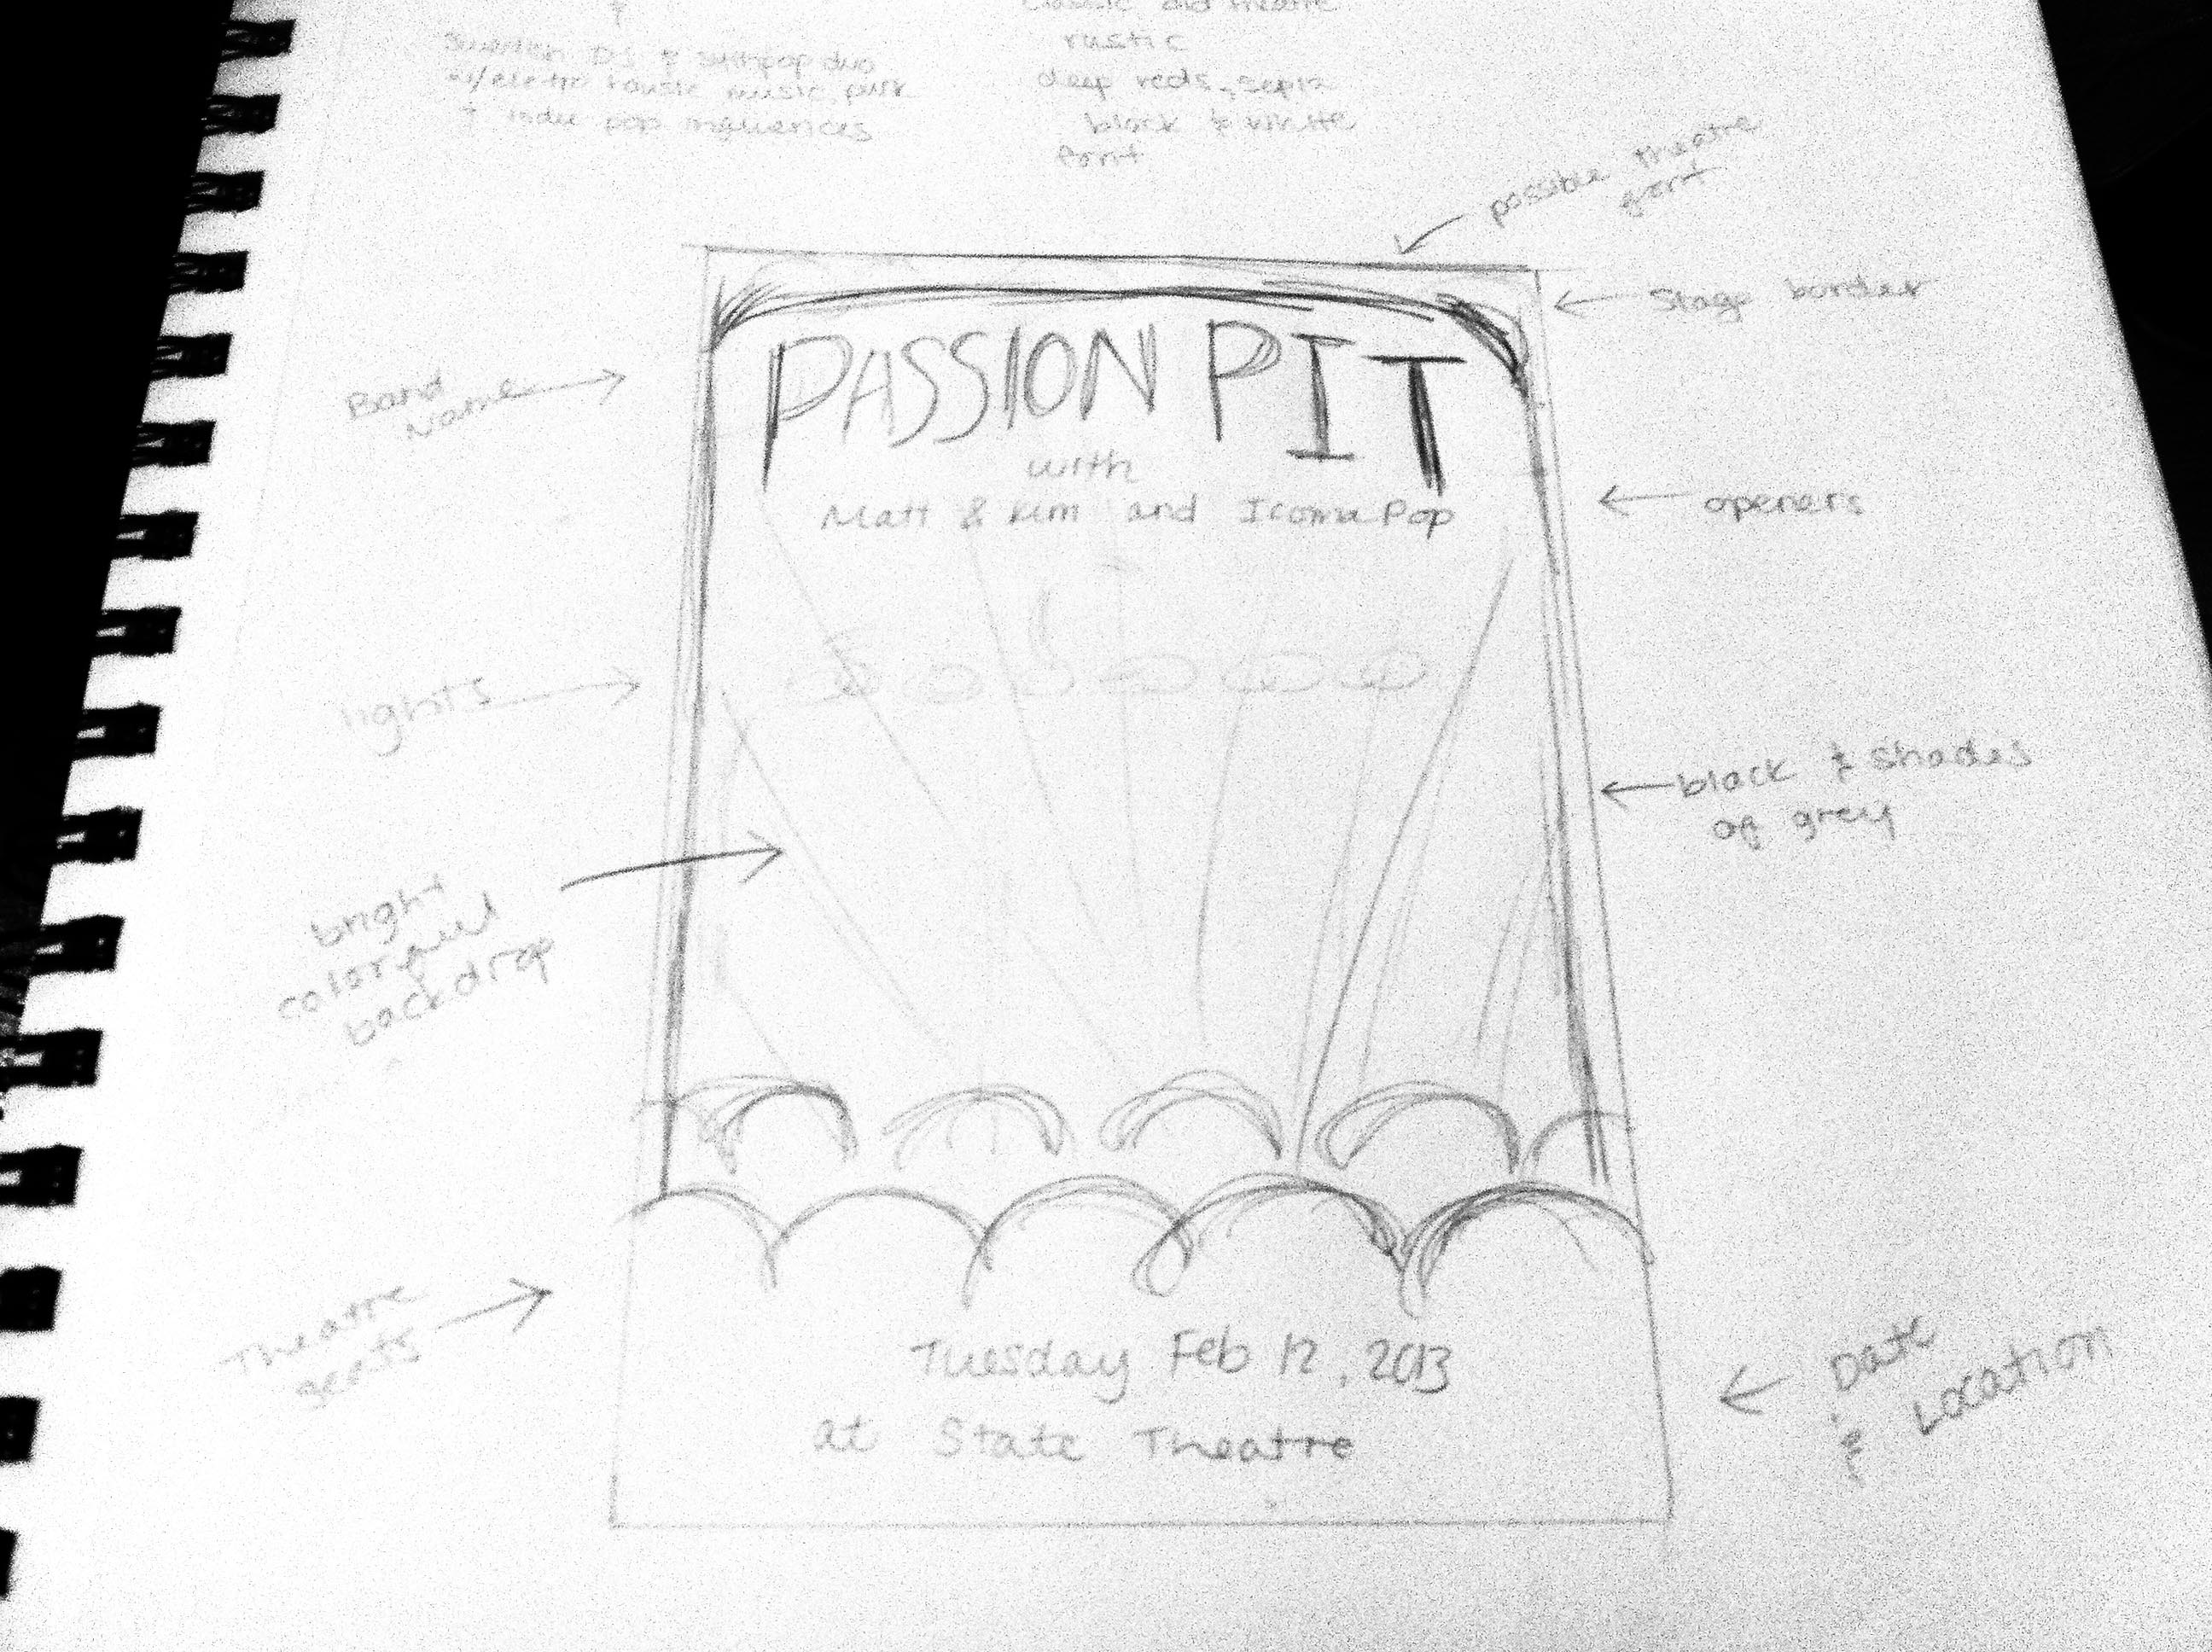 Passion Pit - image 2 - student project